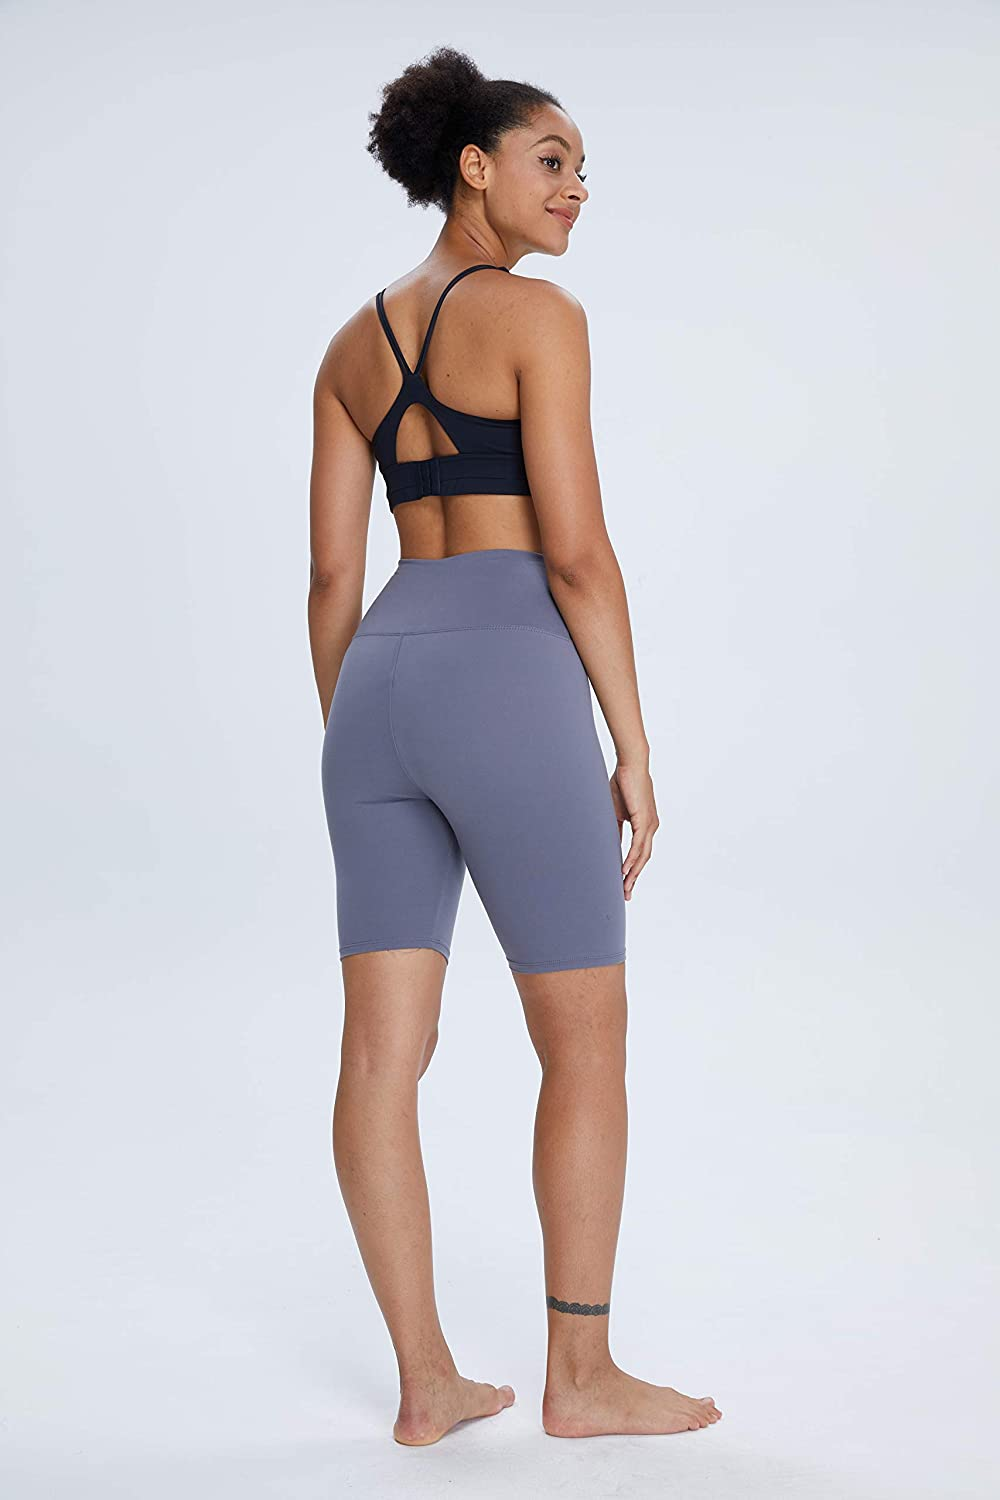 """TNNZEET Biker Shorts for Women Workout 8/"""" High Waisted Stretchy Yoga Pants for Running Cycling"""